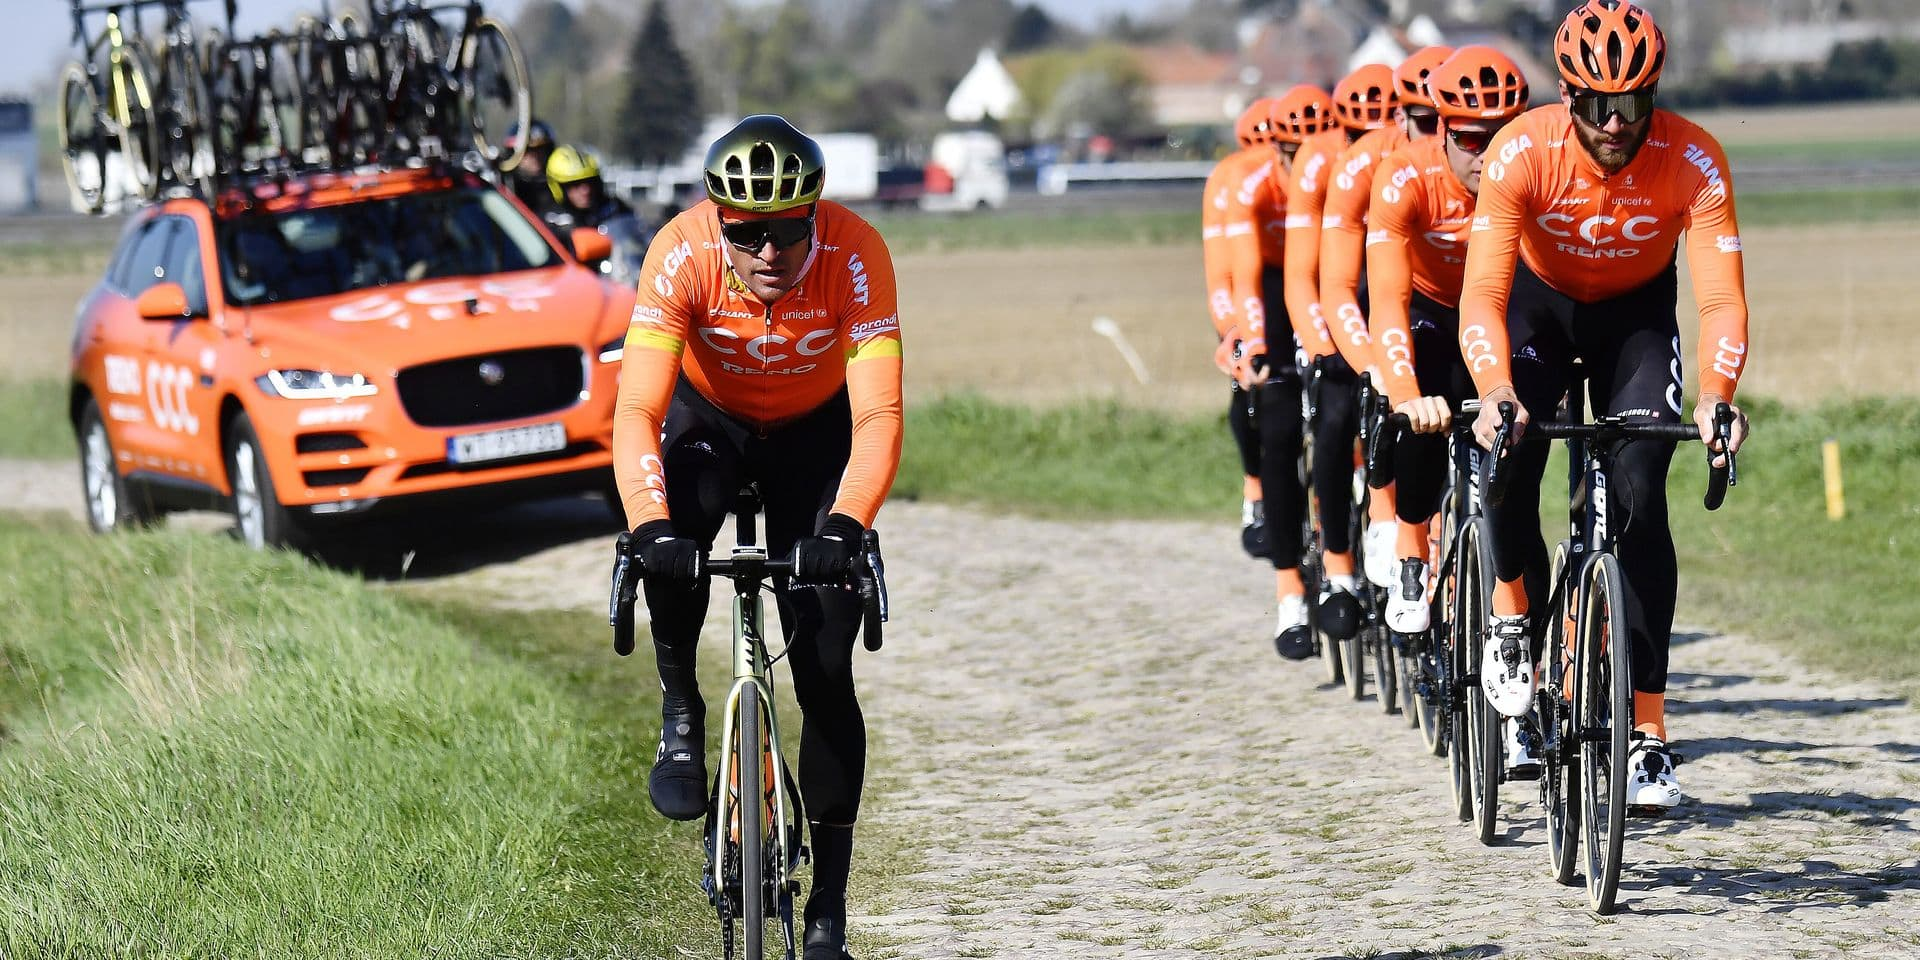 Belgian Greg Van Avermaet of CCC Team (L) pictured in action on a cobblestone sector during a track reconnaissance, Friday 12 April 2019, ahead of Sunday's 'Paris-Roubaix' one day cycling race. BELGA PHOTO DIRK WAEM